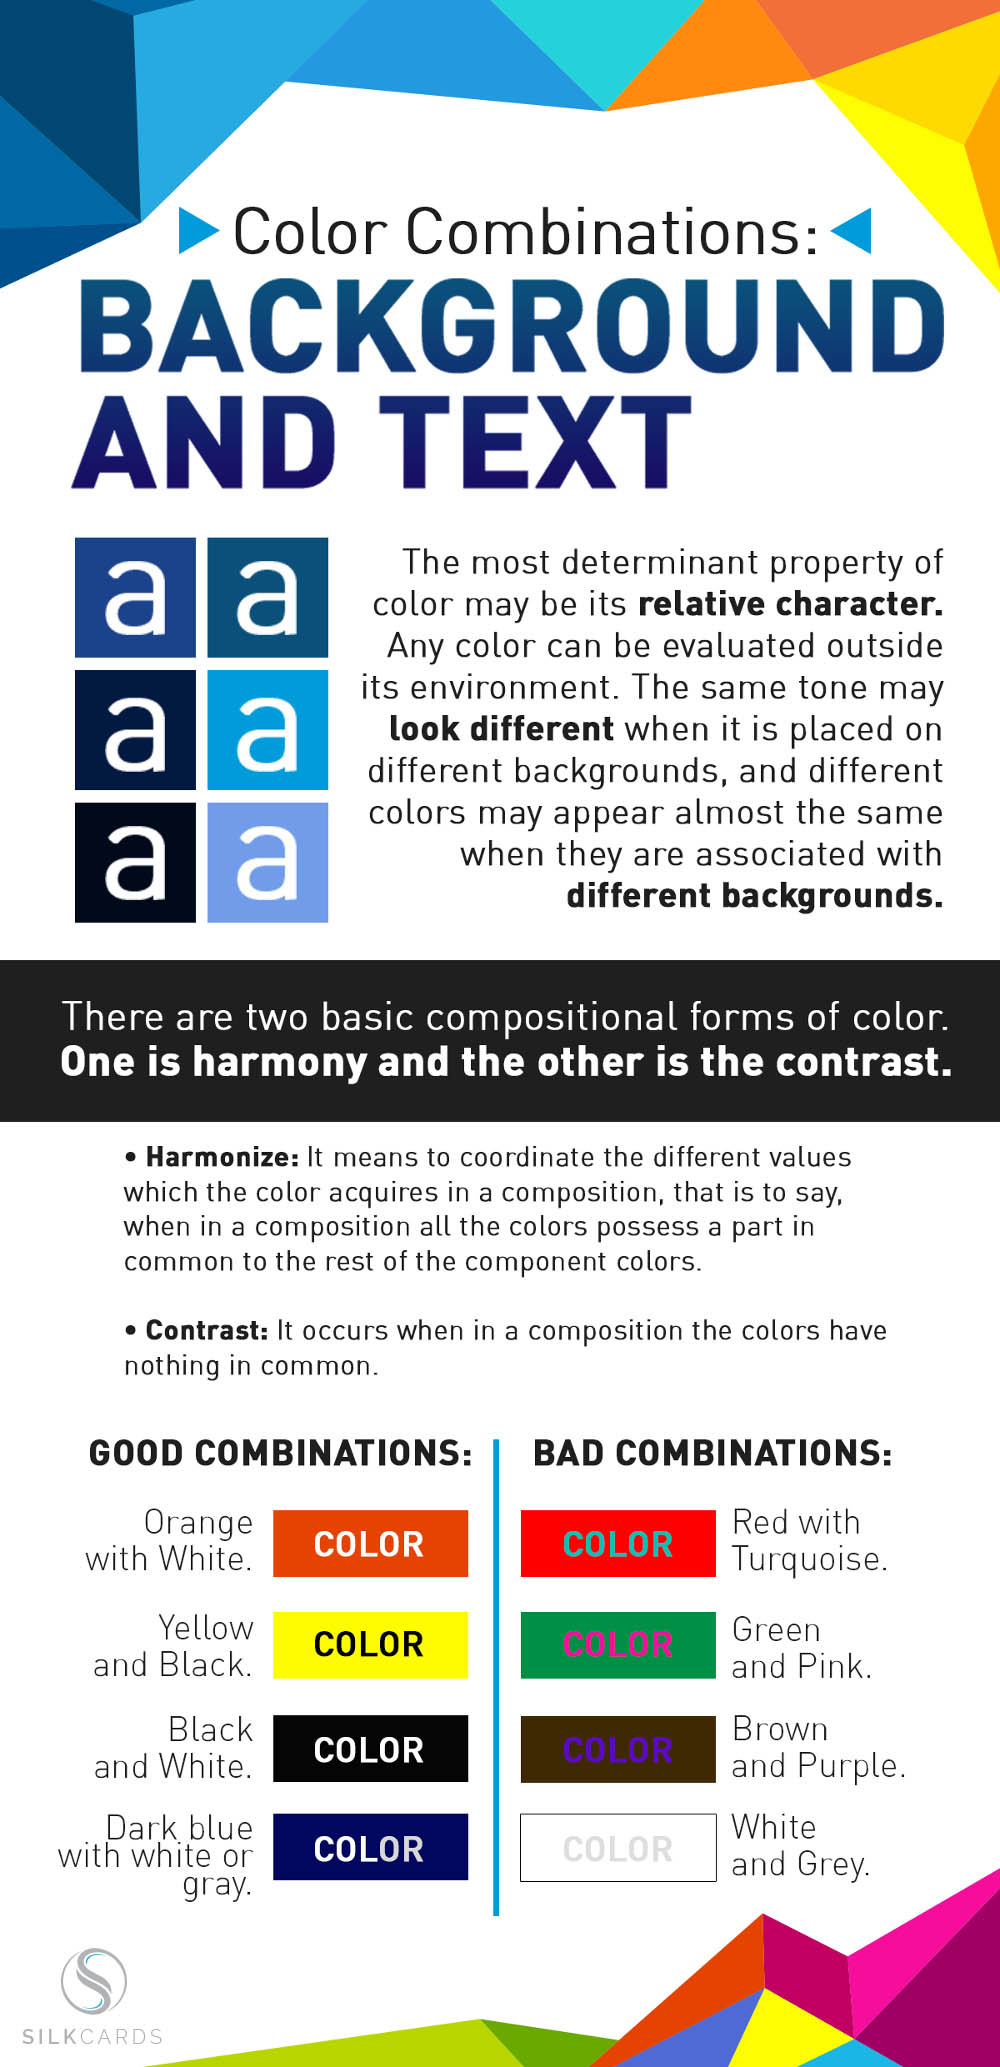 Any color can be evaluated outside its environment. Be aware that the same tone may look different when it is placed on different backgrounds, and different colors may appear almost the same when they are associated with different backgrounds.